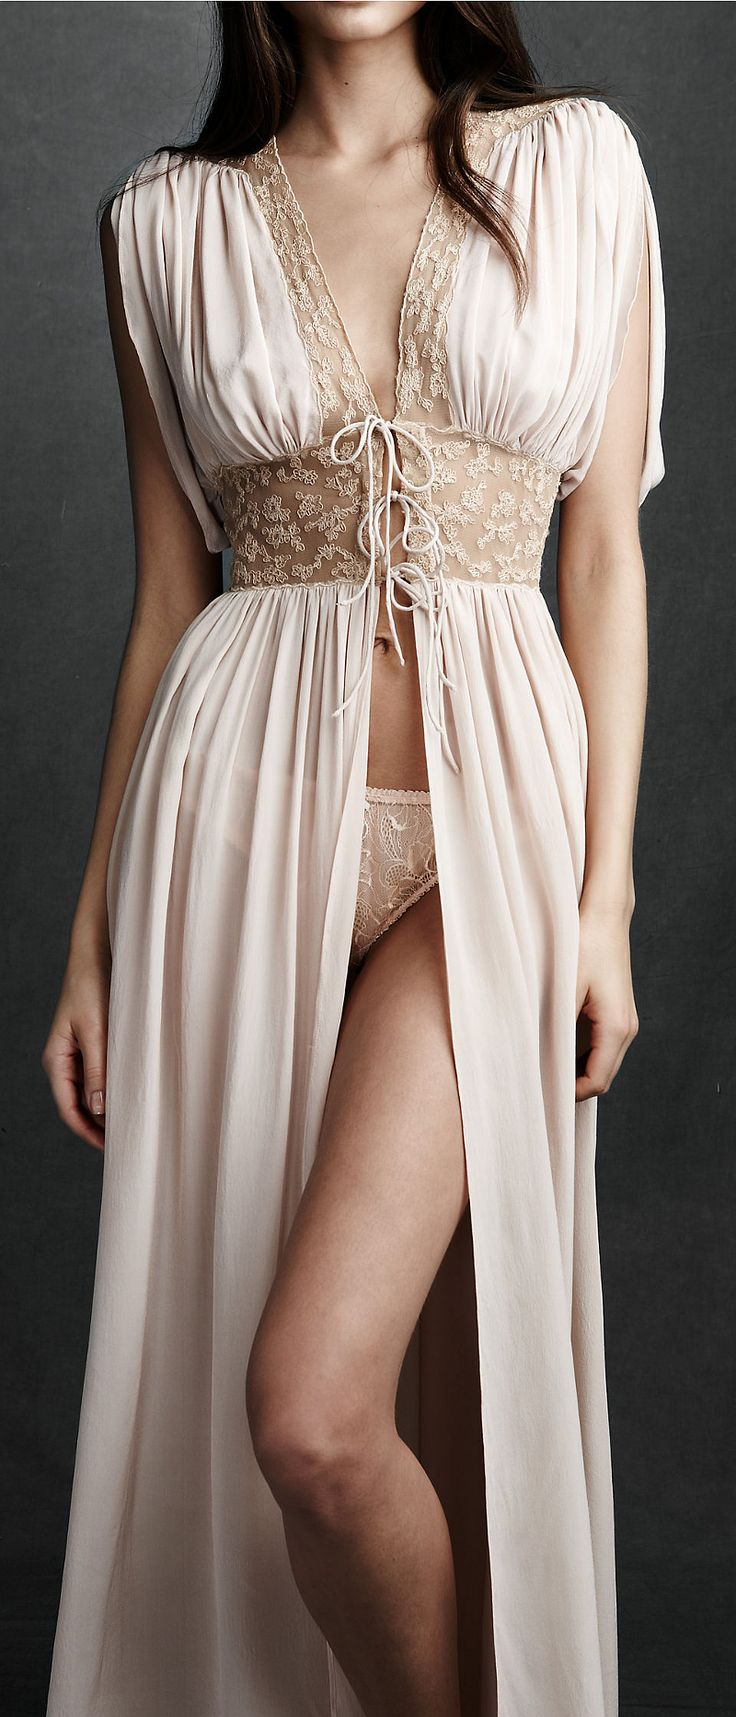 beautiful lingerie; penoir by bhldn, Anthropologie